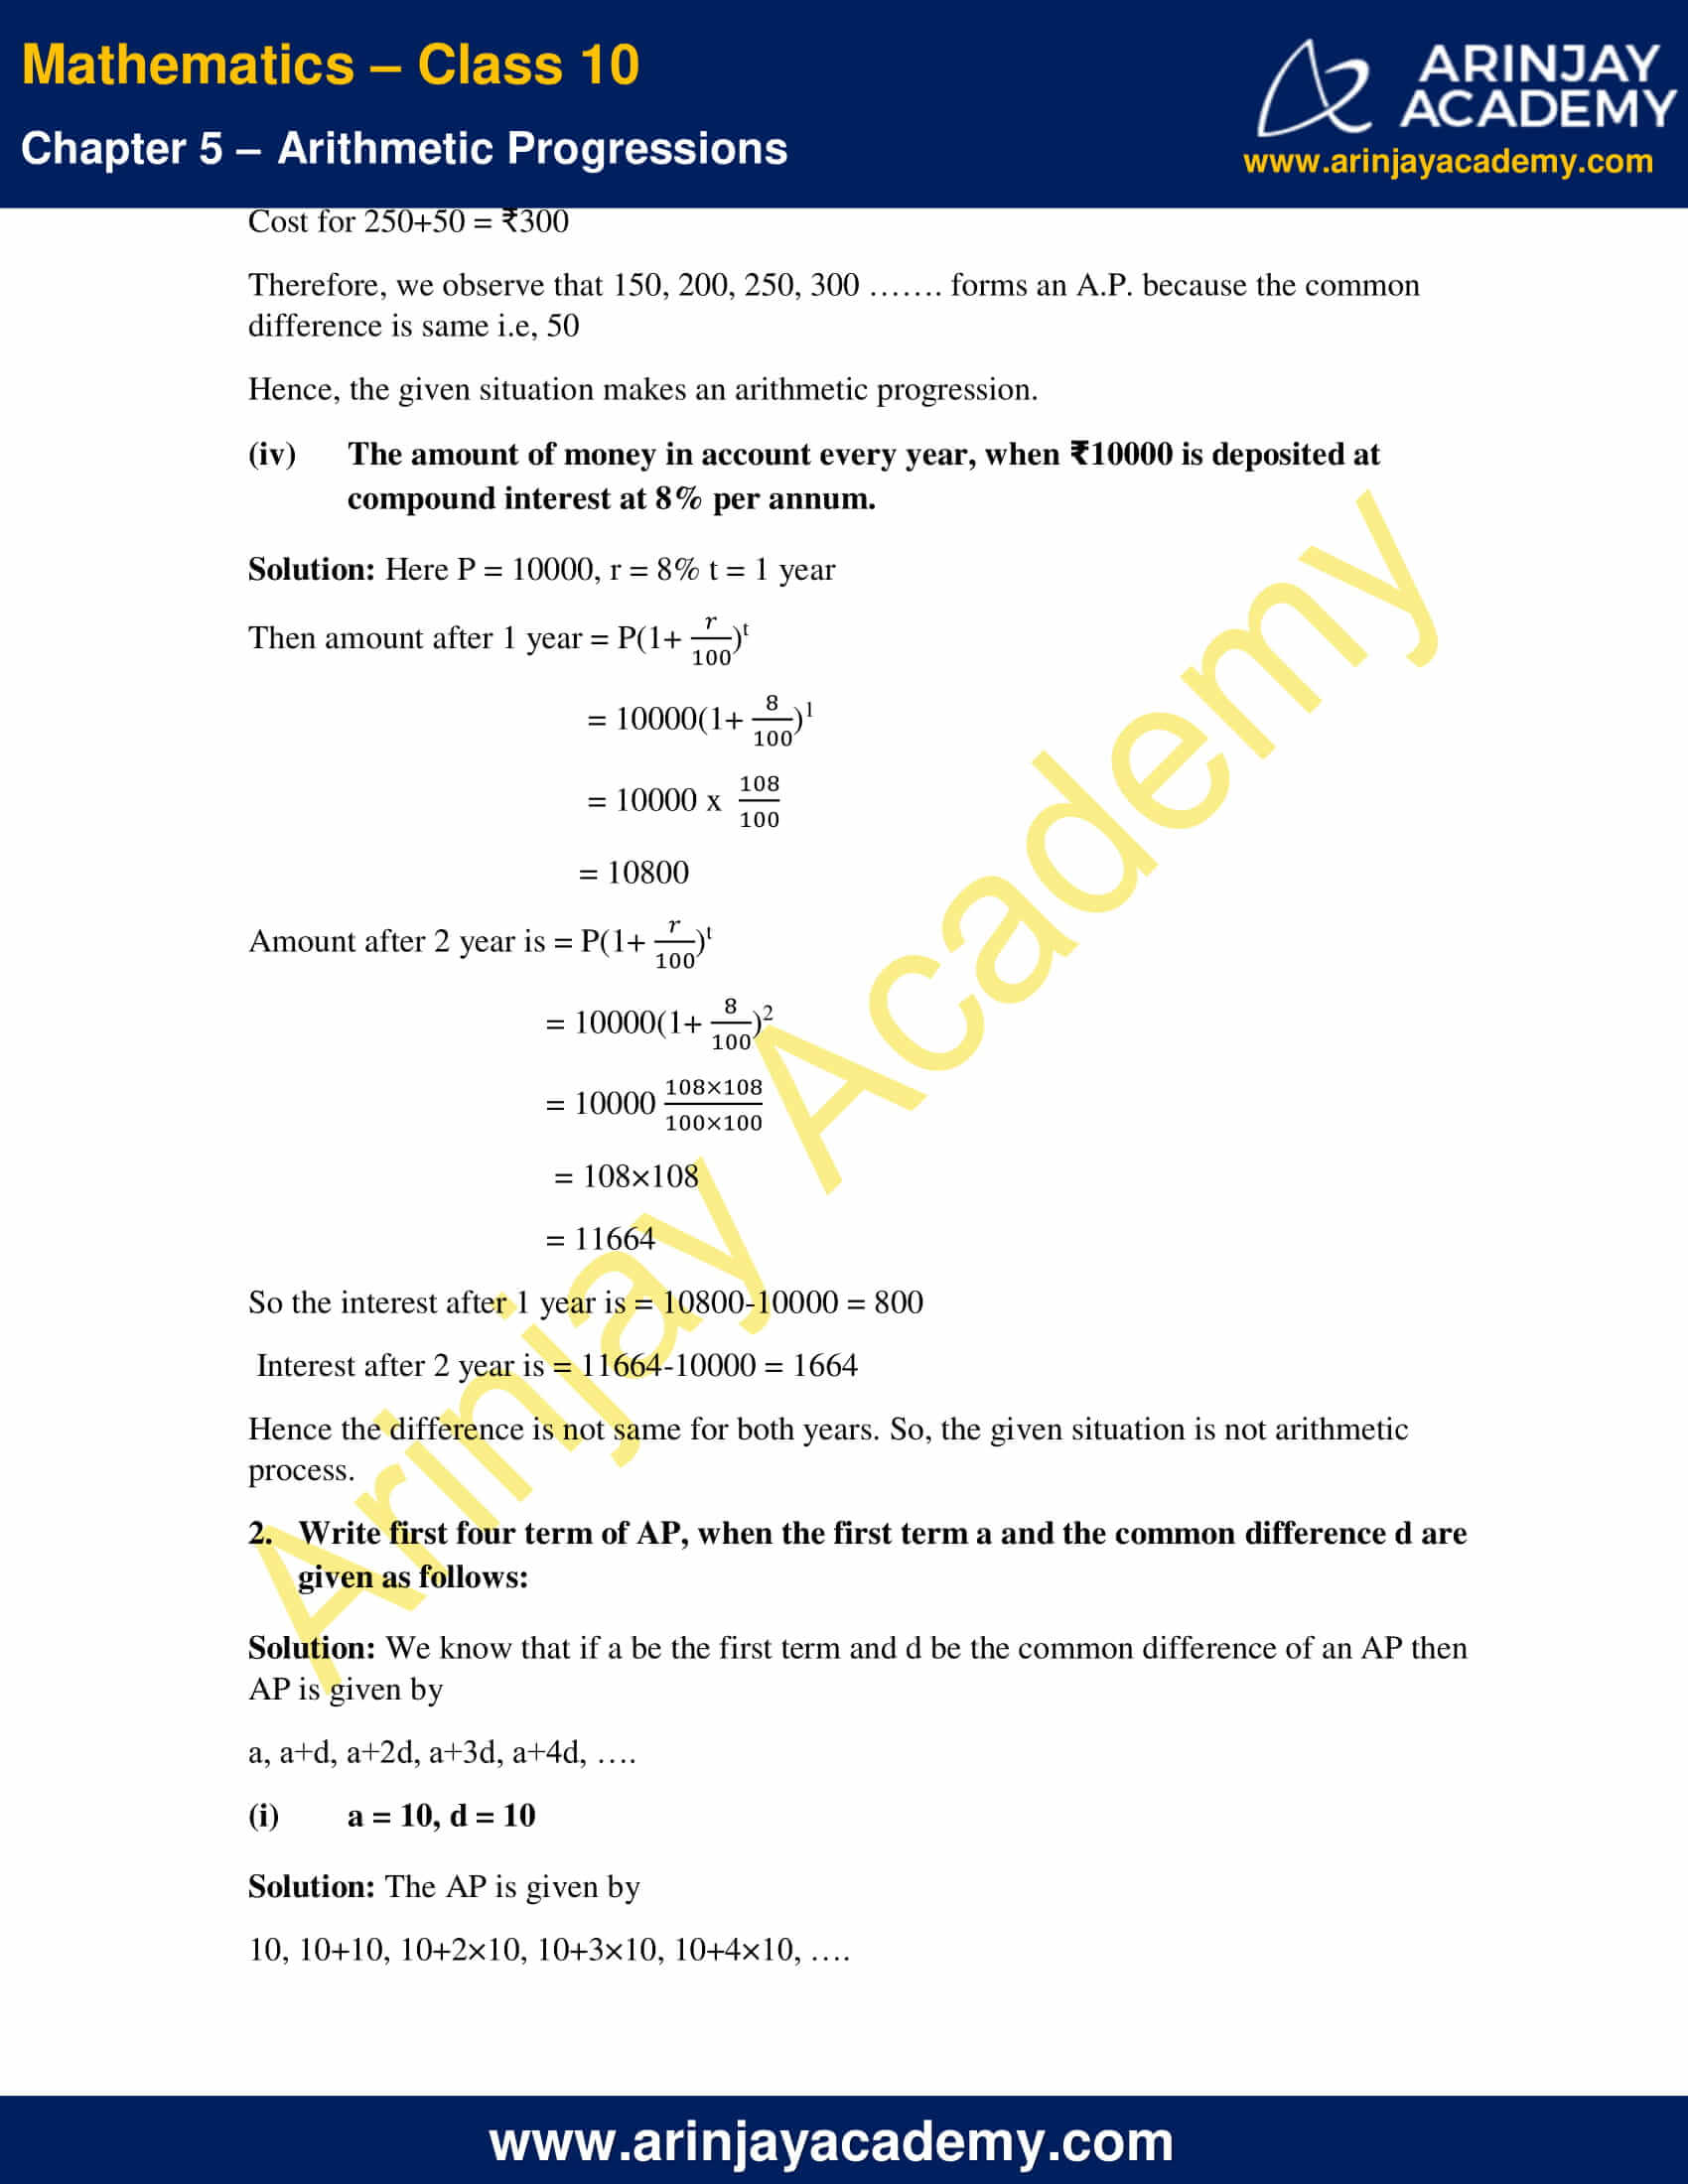 NCERT Solutions For Class 10 Maths Chapter 5 Exercise 5.1 image 2